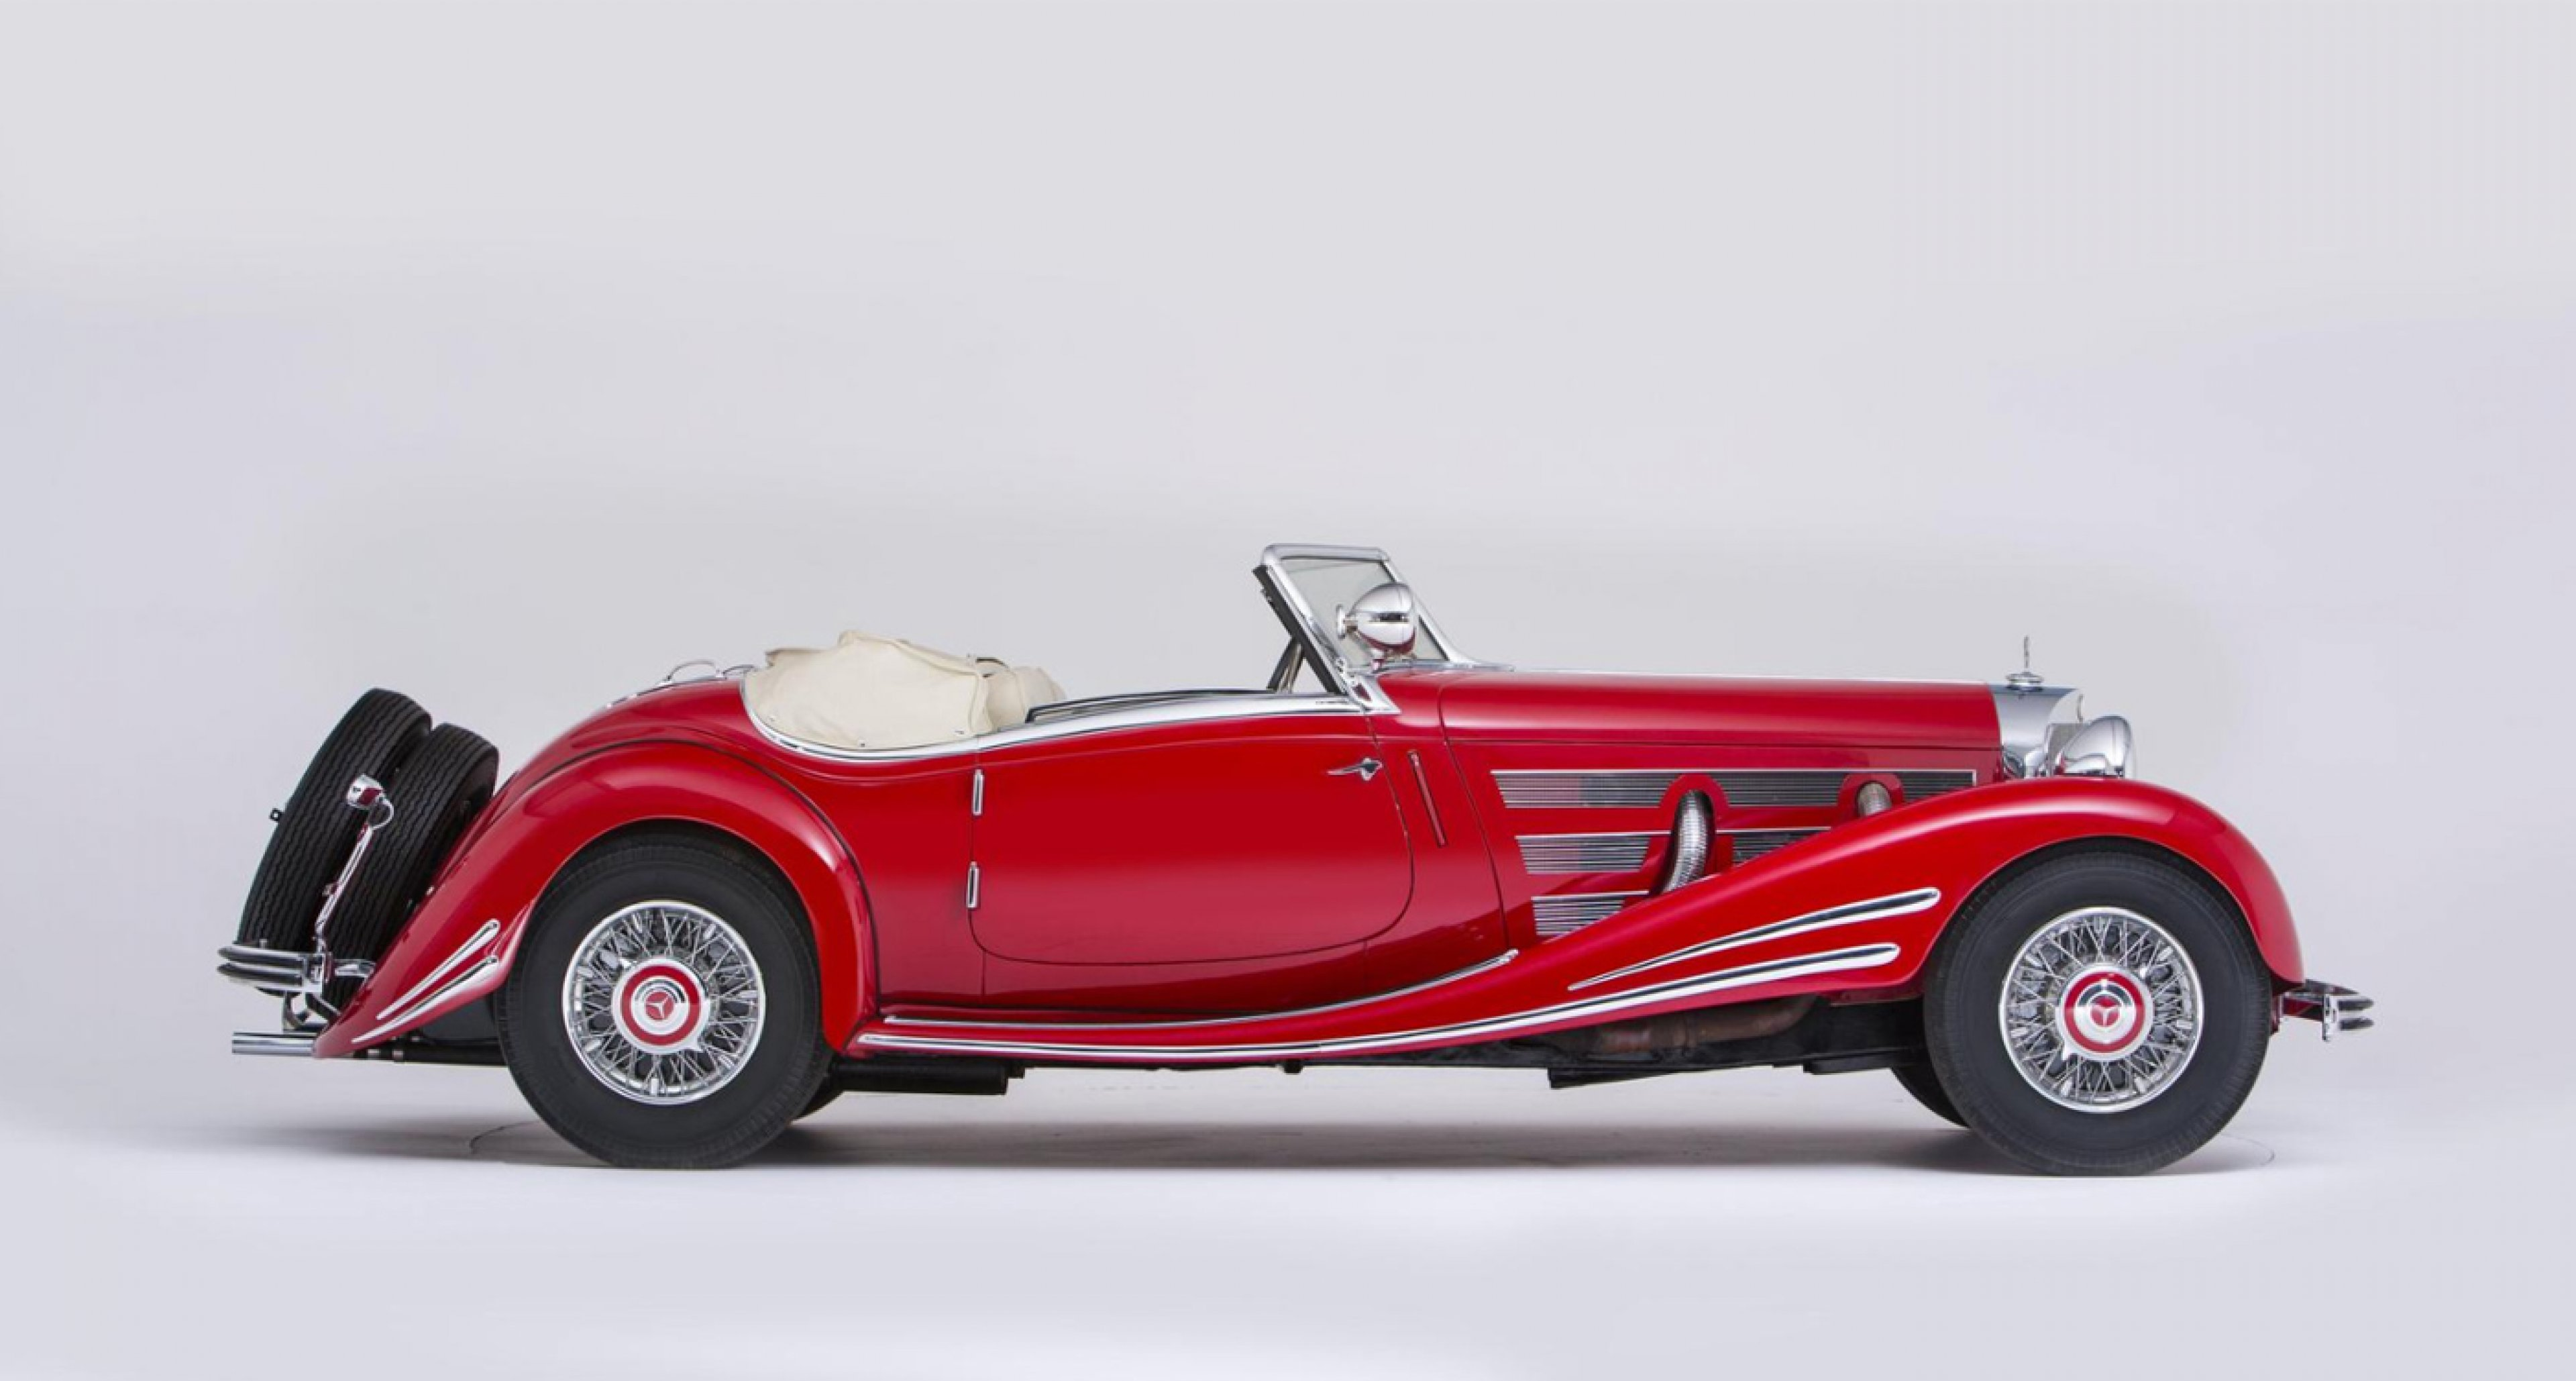 Lot 16: 1934 Mercedes-Benz 500 K/540 K (factory upgrade) Spezial Roadster 'Sold without reserve to benefit the Cancer and Alzheimer's Charities of Sweden' (€ 3.6 Mio. - 5.8 Mio.)